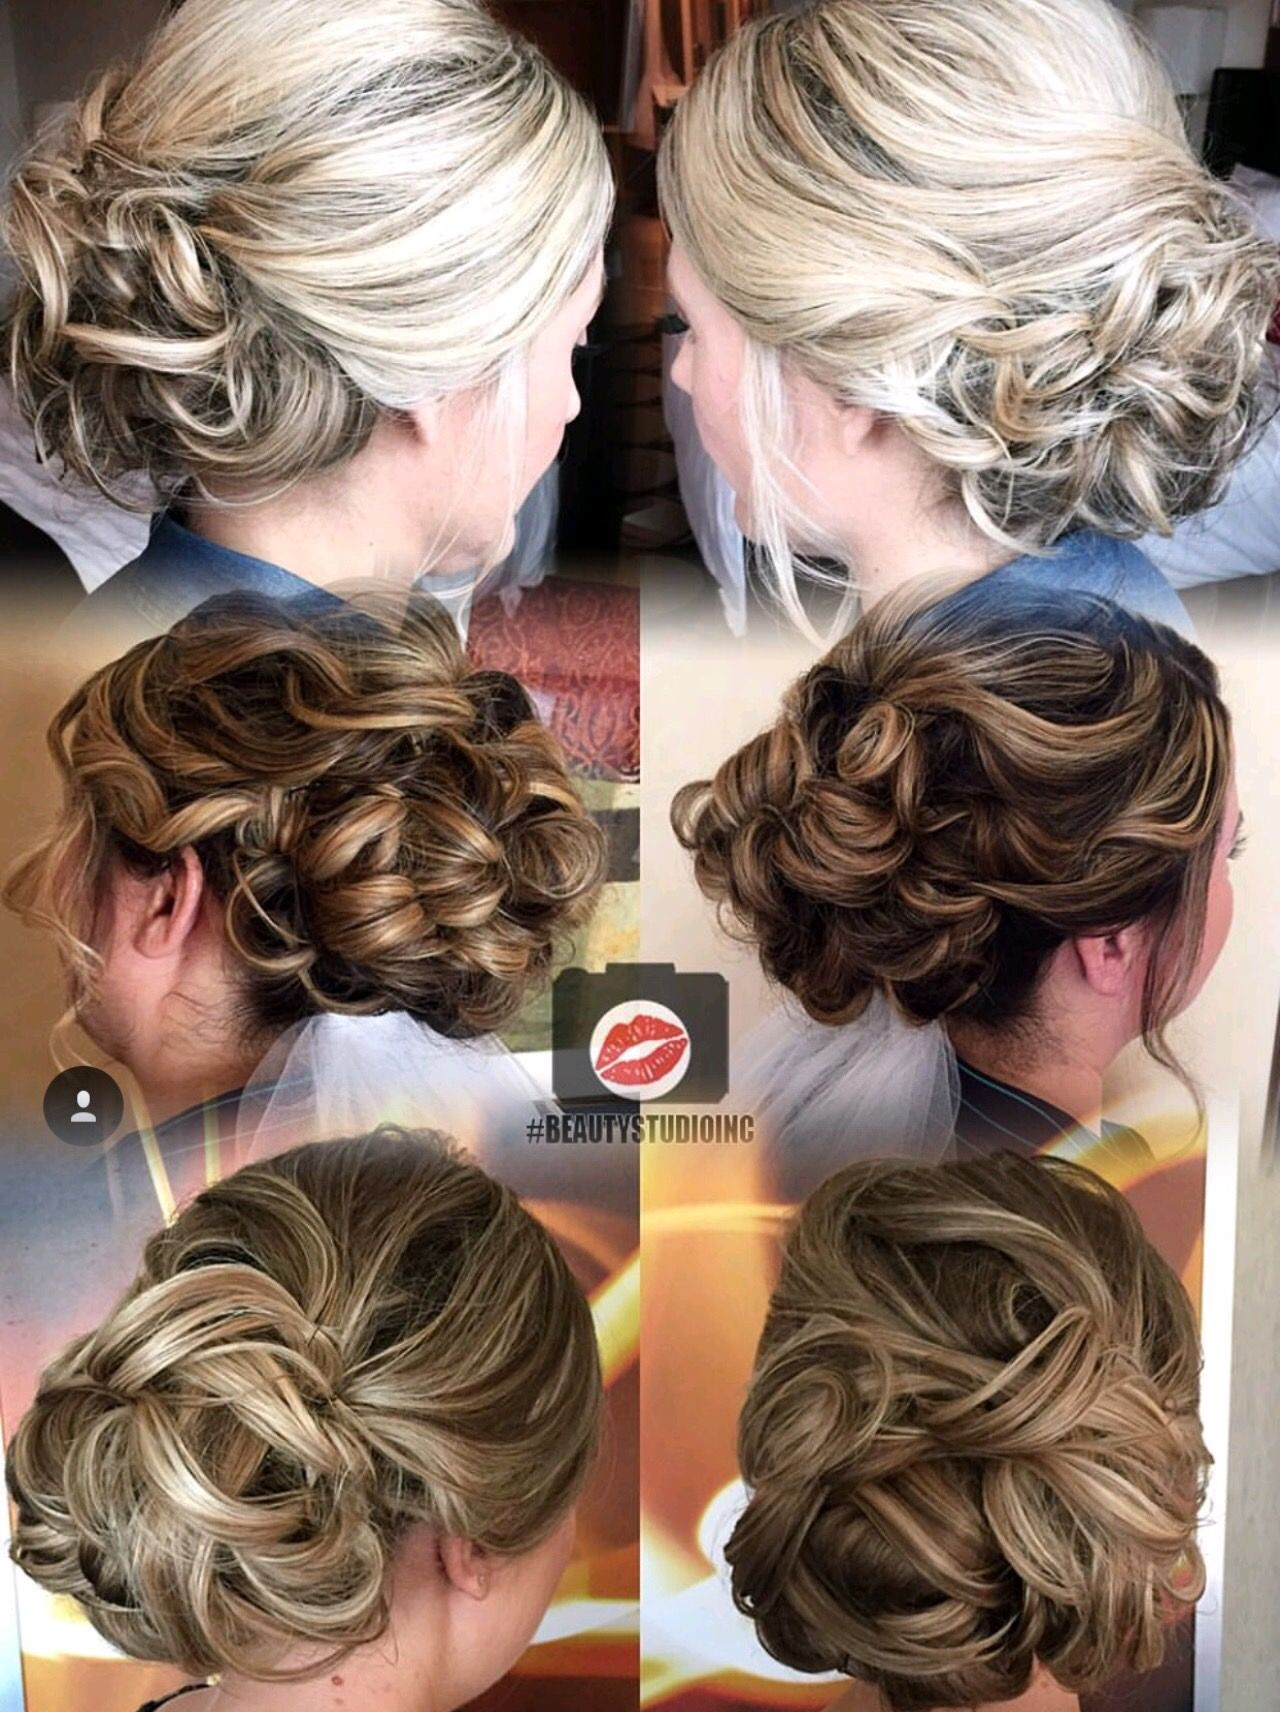 book your #vegaswedding hair and makeup today - we come to you